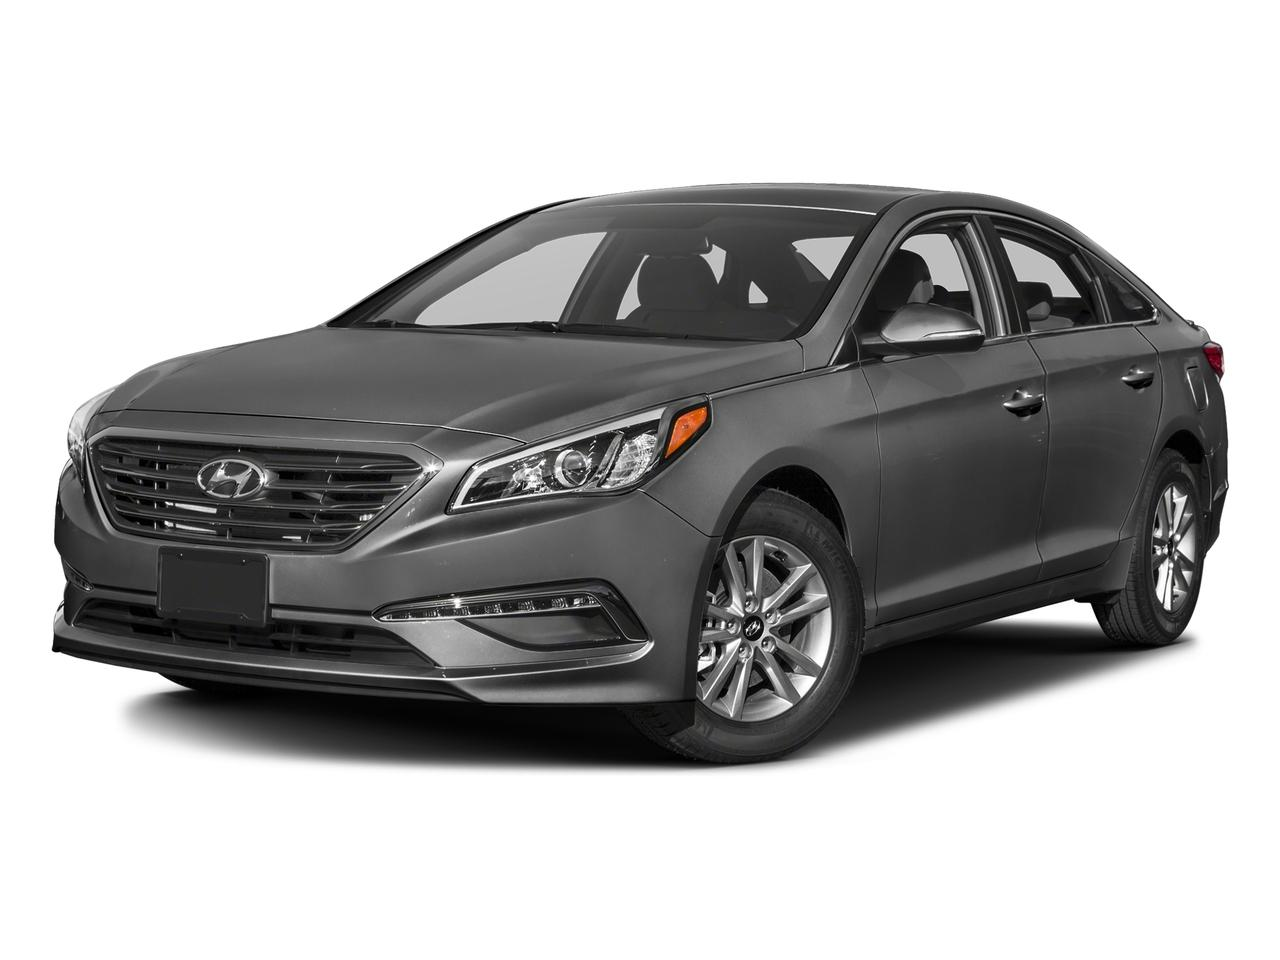 2016 Hyundai Sonata Vehicle Photo in Spokane, WA 99207